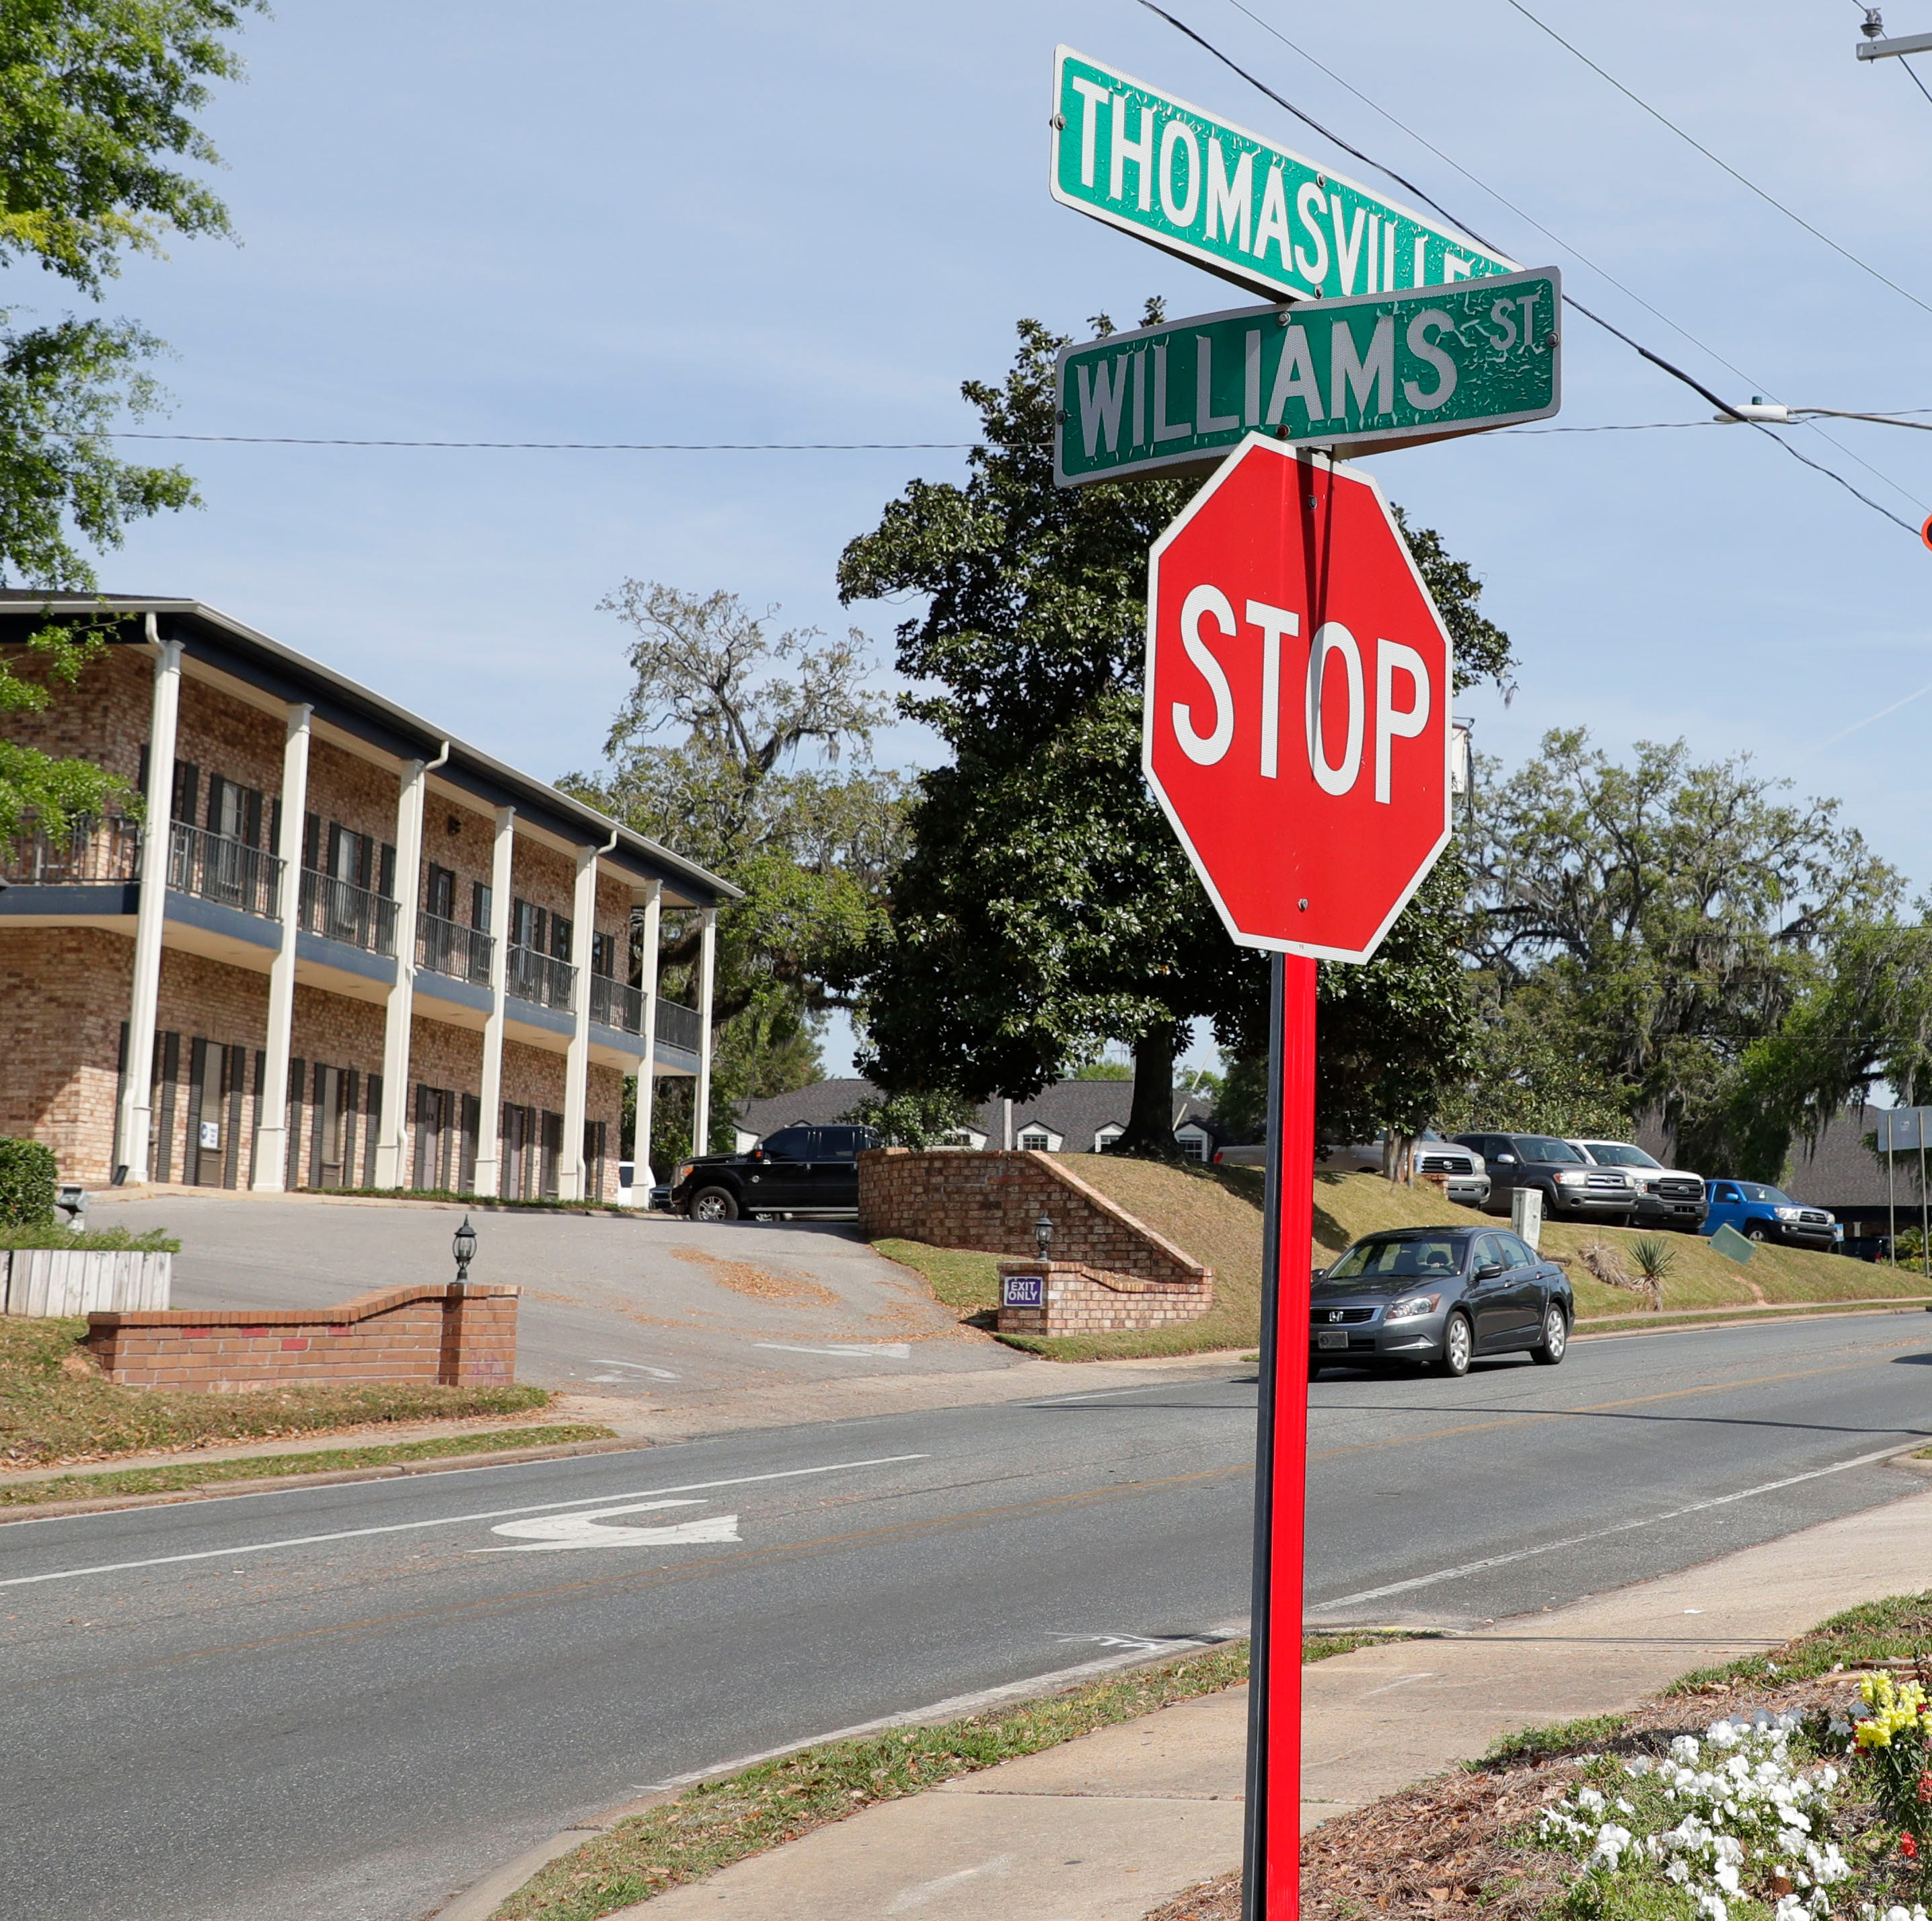 Midtown merchants decry planned weekend closure of Thomasville Road for sewer work